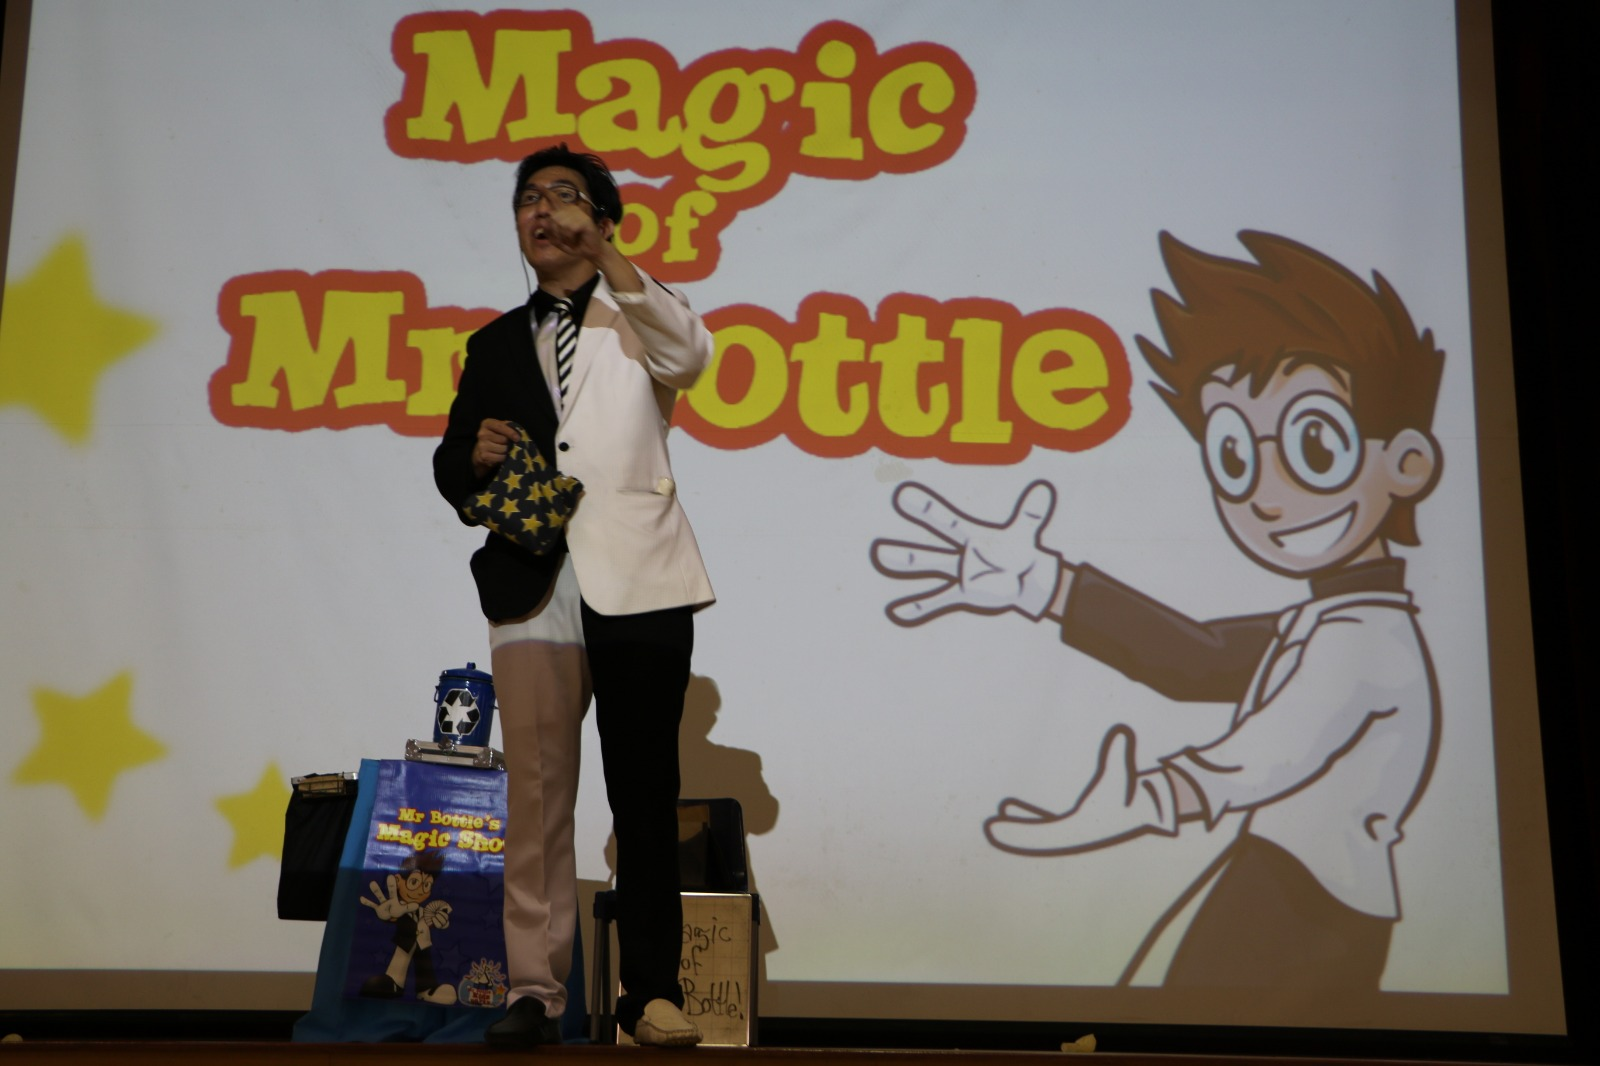 Mr Bottle's Magic Show at school assembly